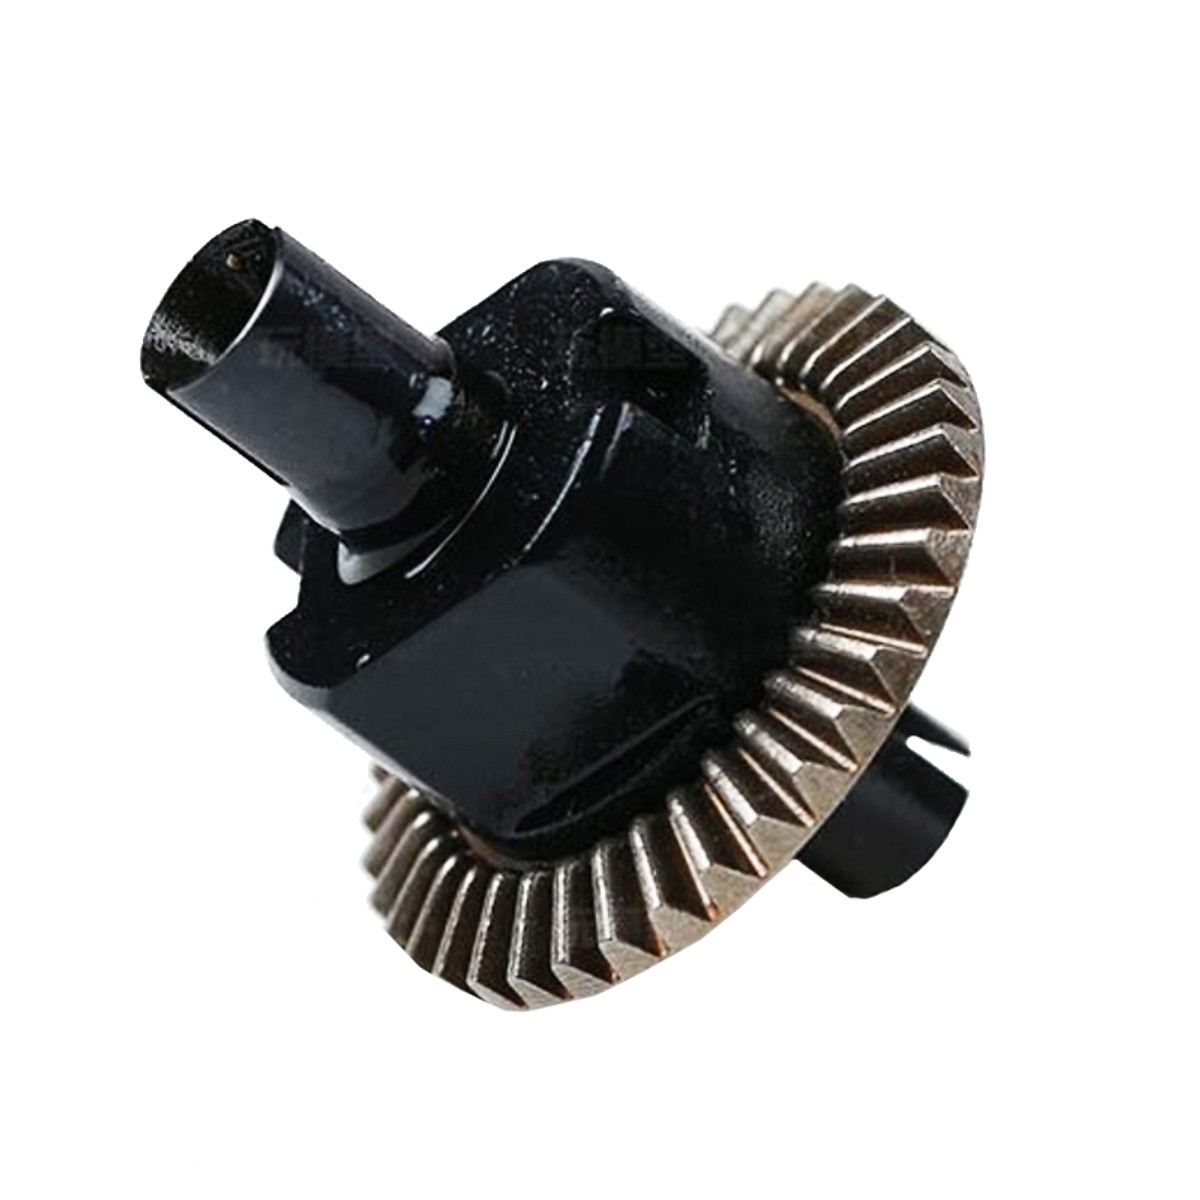 Phụ Tùng Cho Xe Buggy 02024 HSP Diff.Gear Complete For RC 1/10 Model